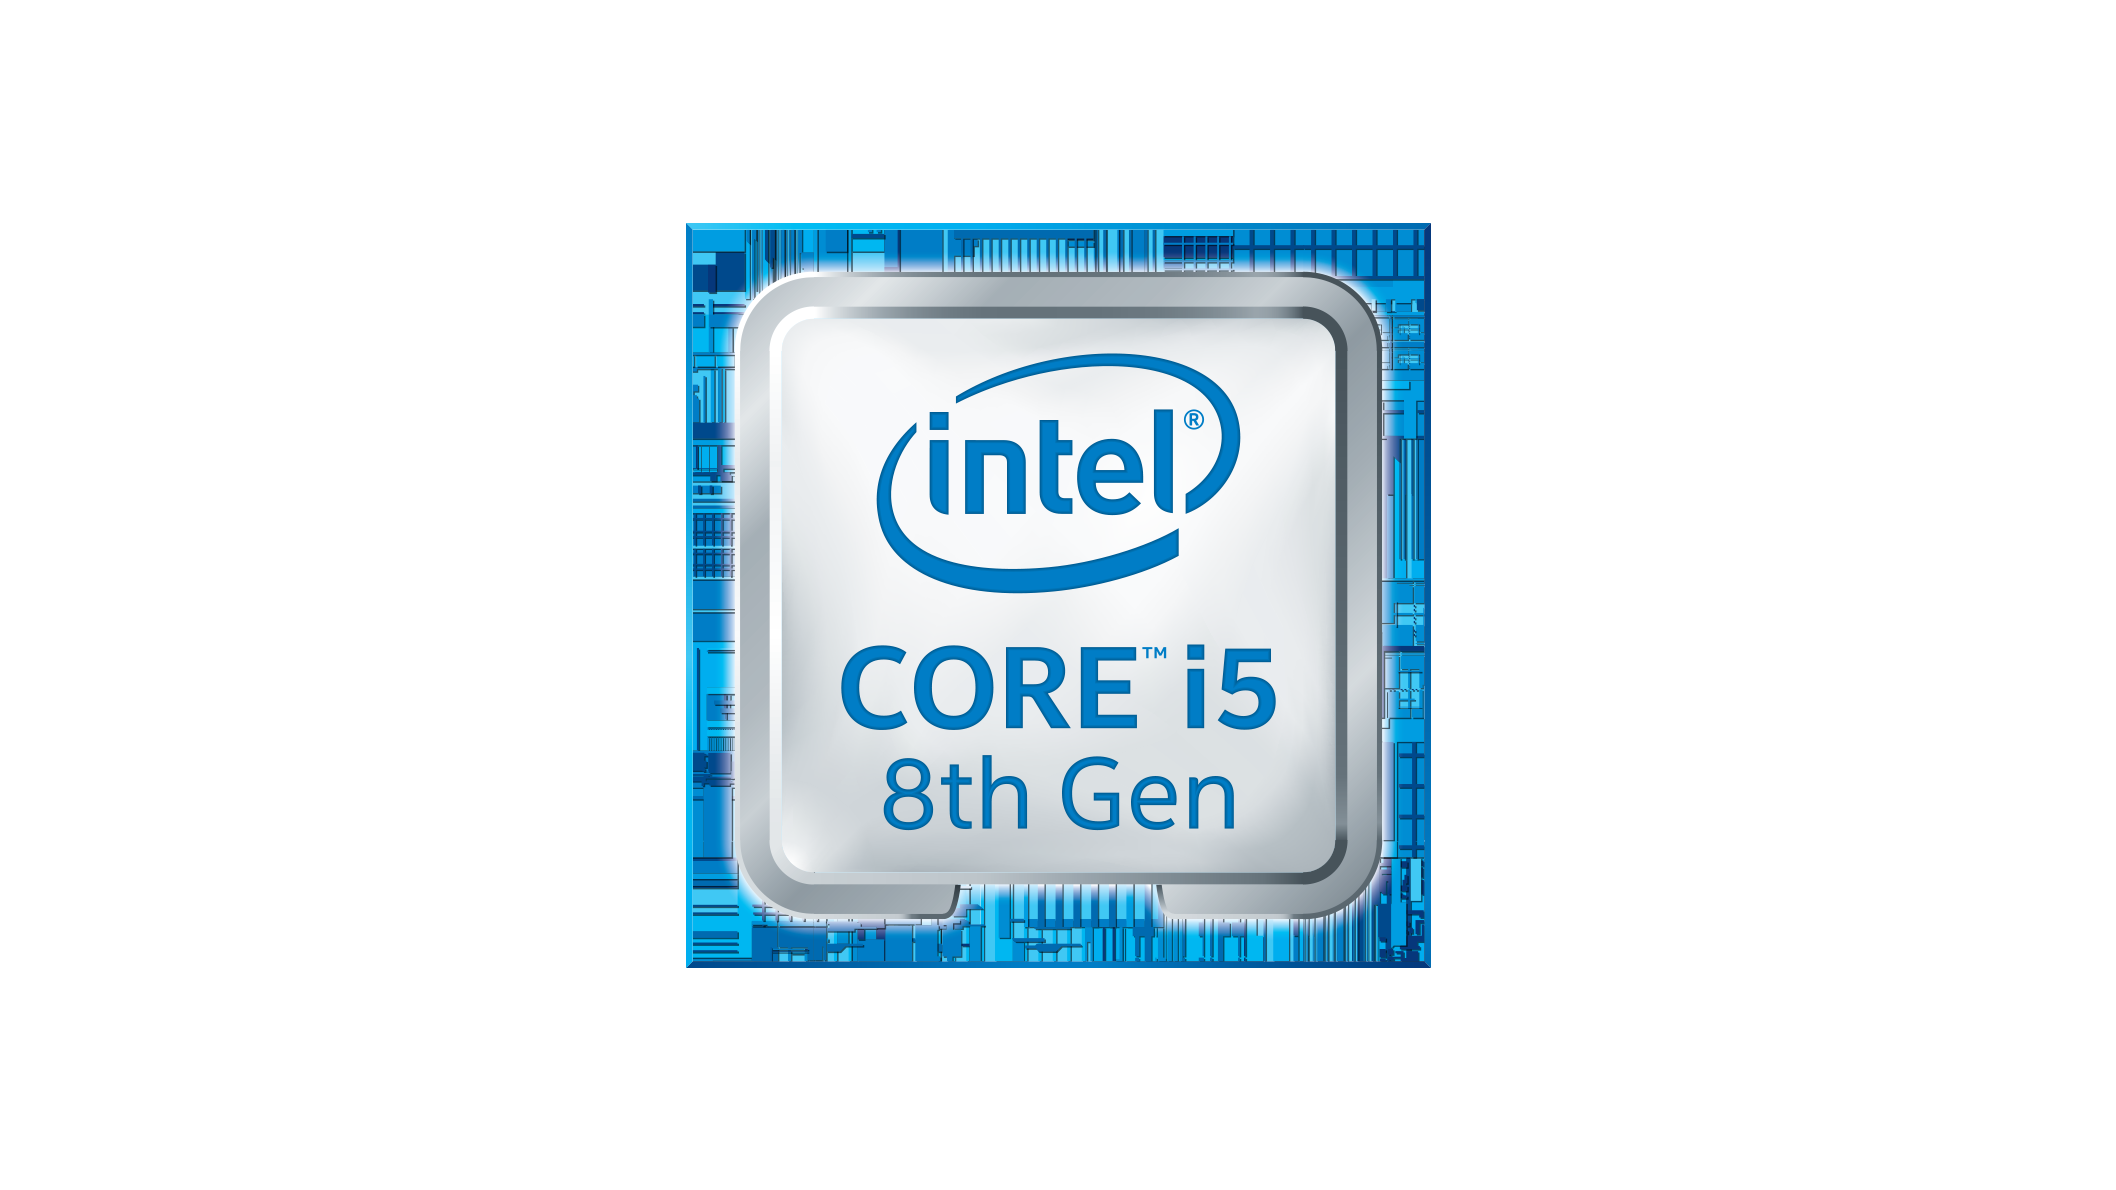 Intel Core i5 8th Gen logo